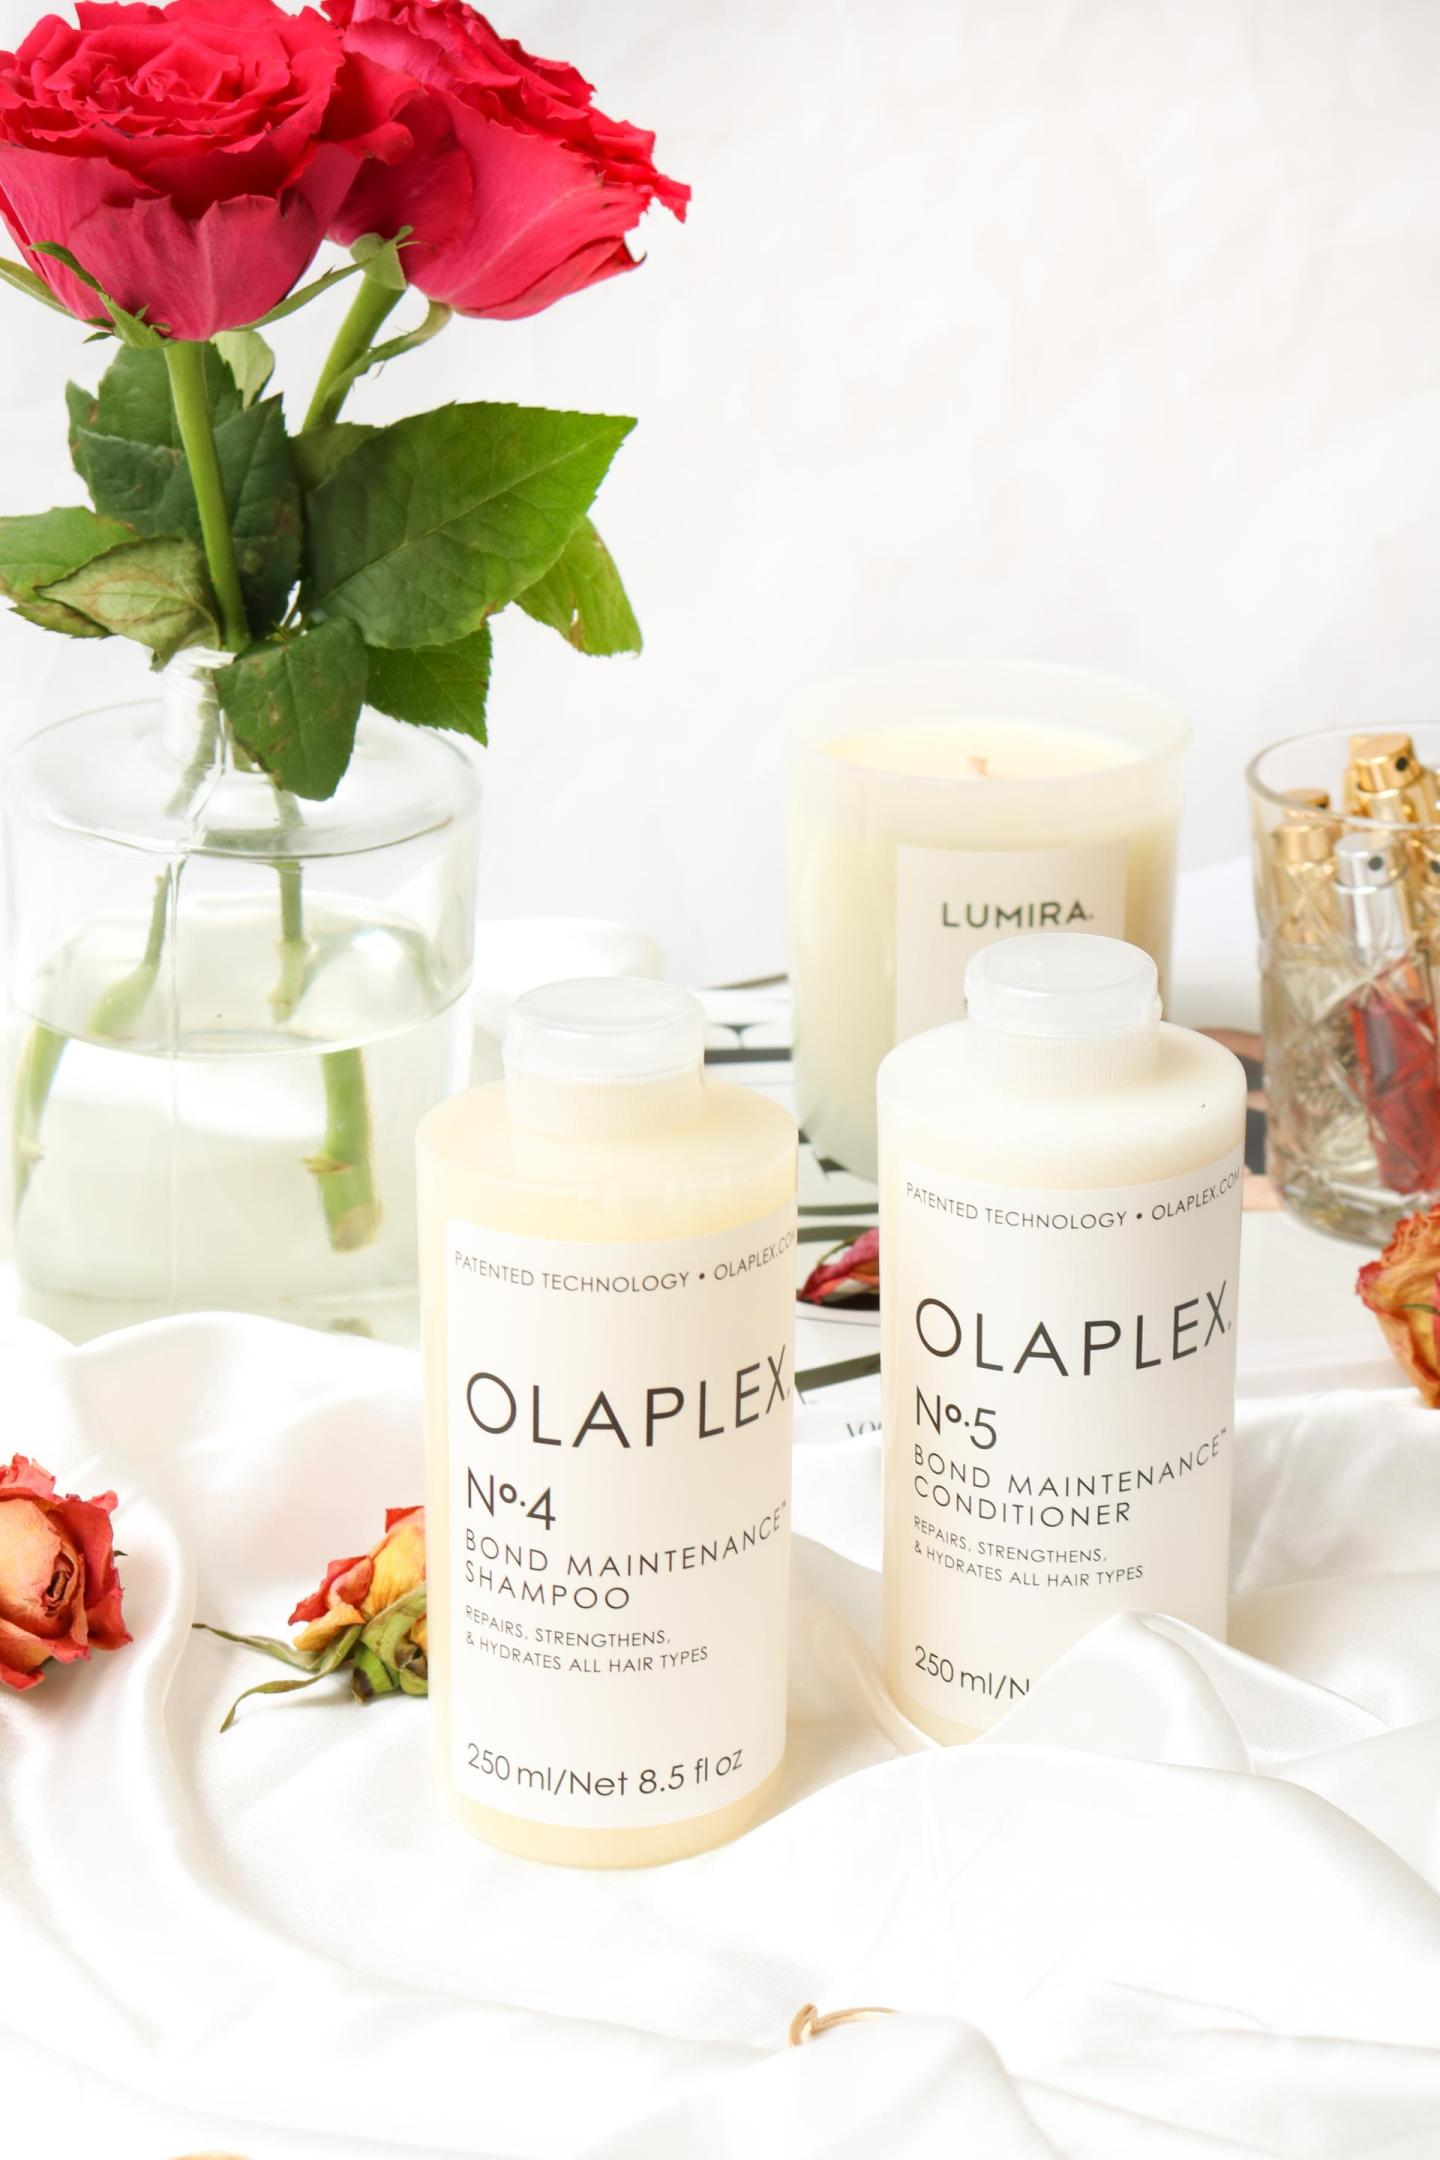 Olaplex Shampoo and Conditioner